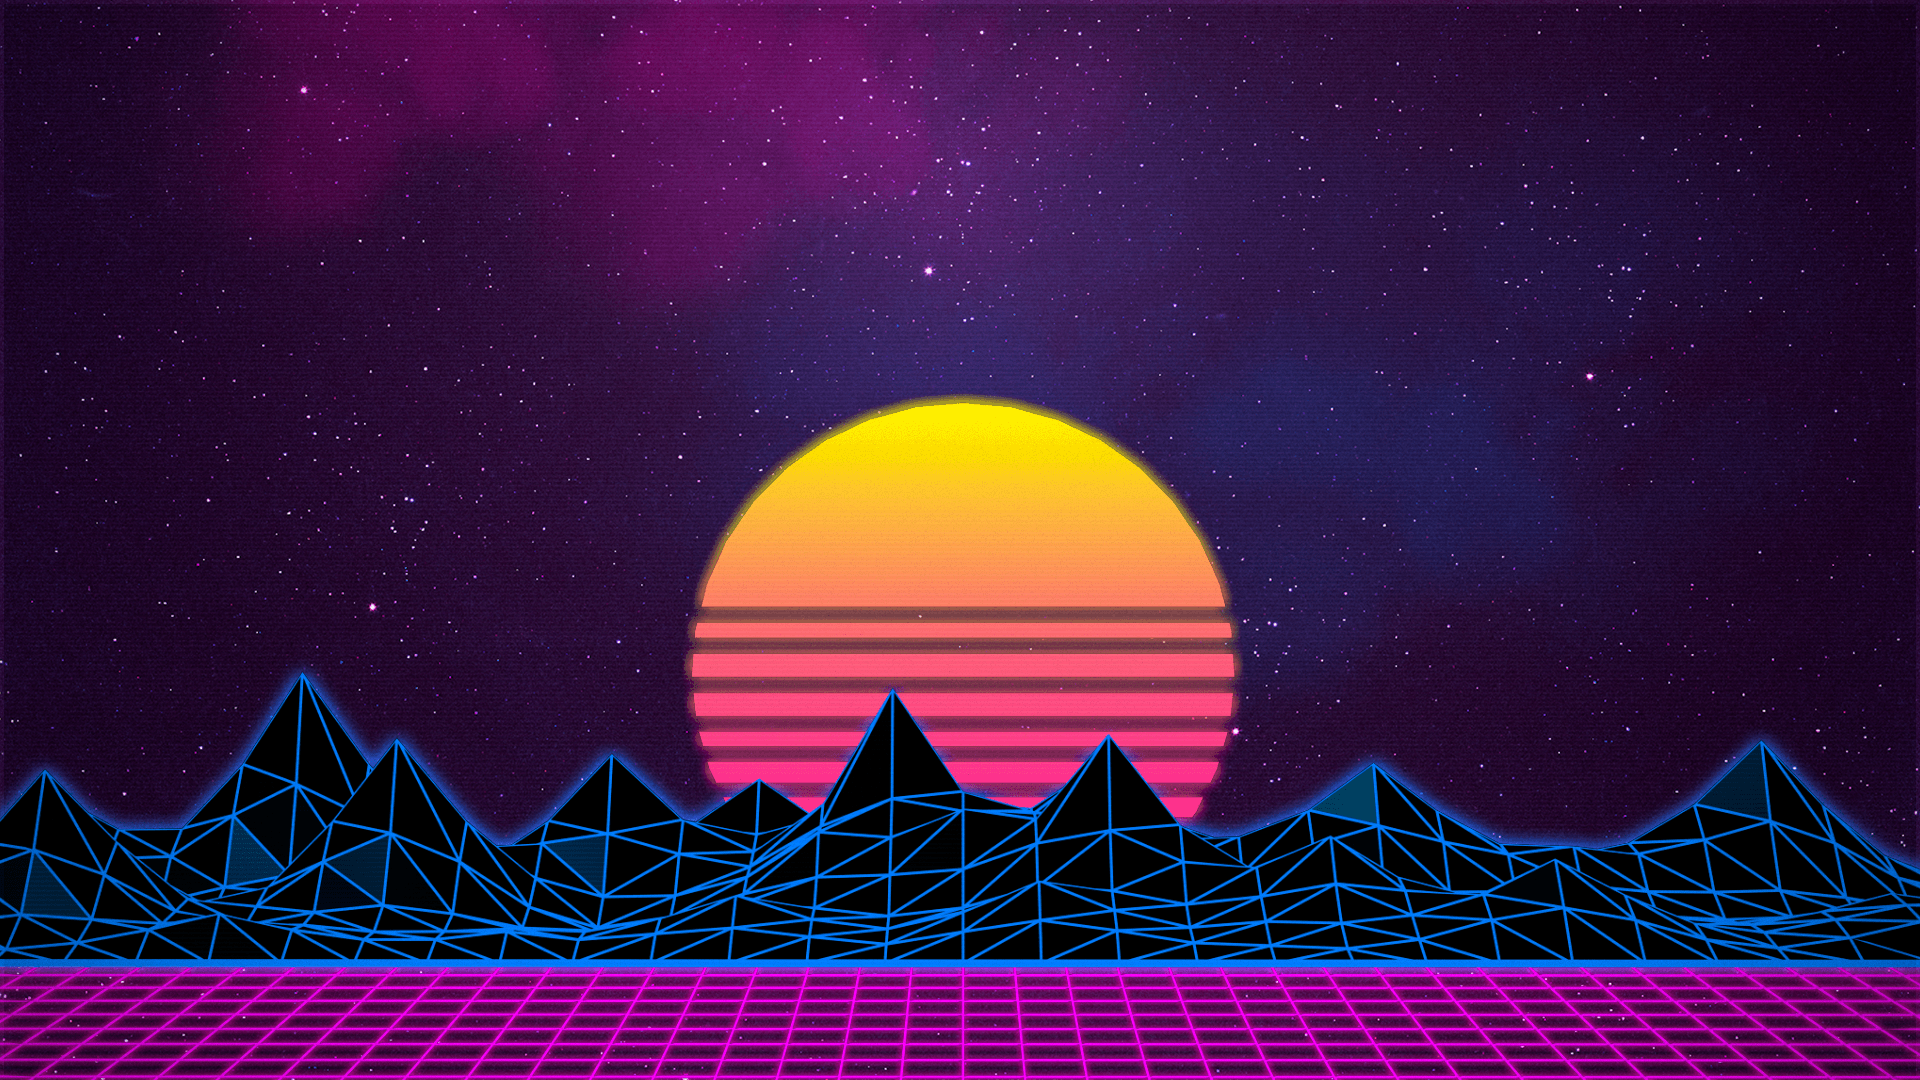 Retro Pc Wallpaper posted by Samantha Cunningham 1920x1080